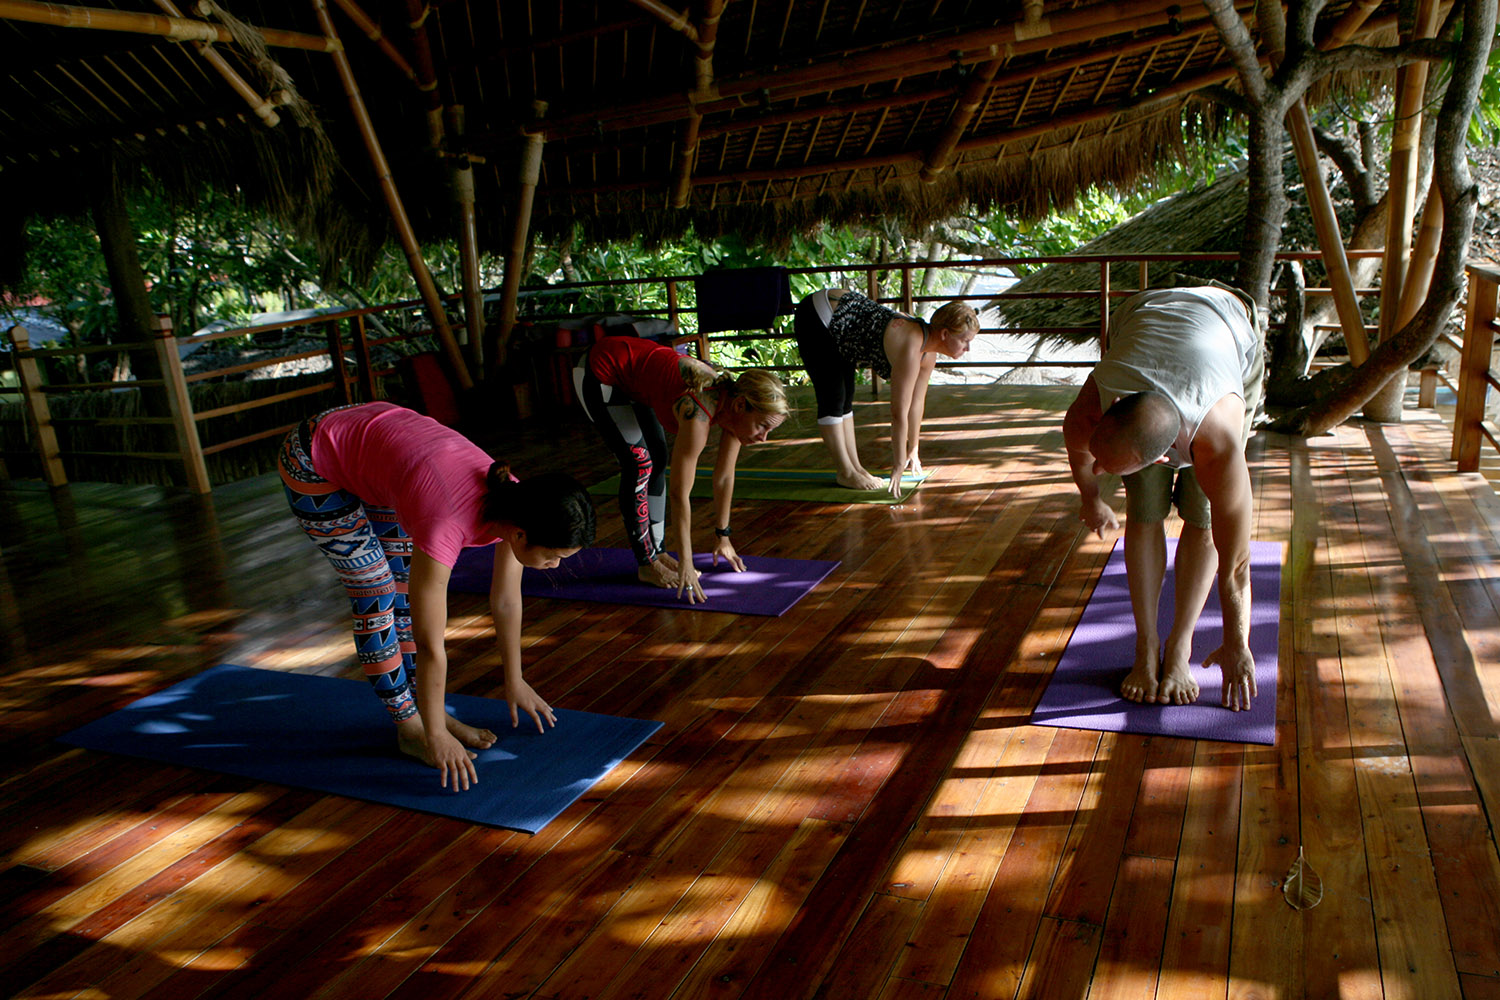 Yoga in the tree house with Tim Feldmann